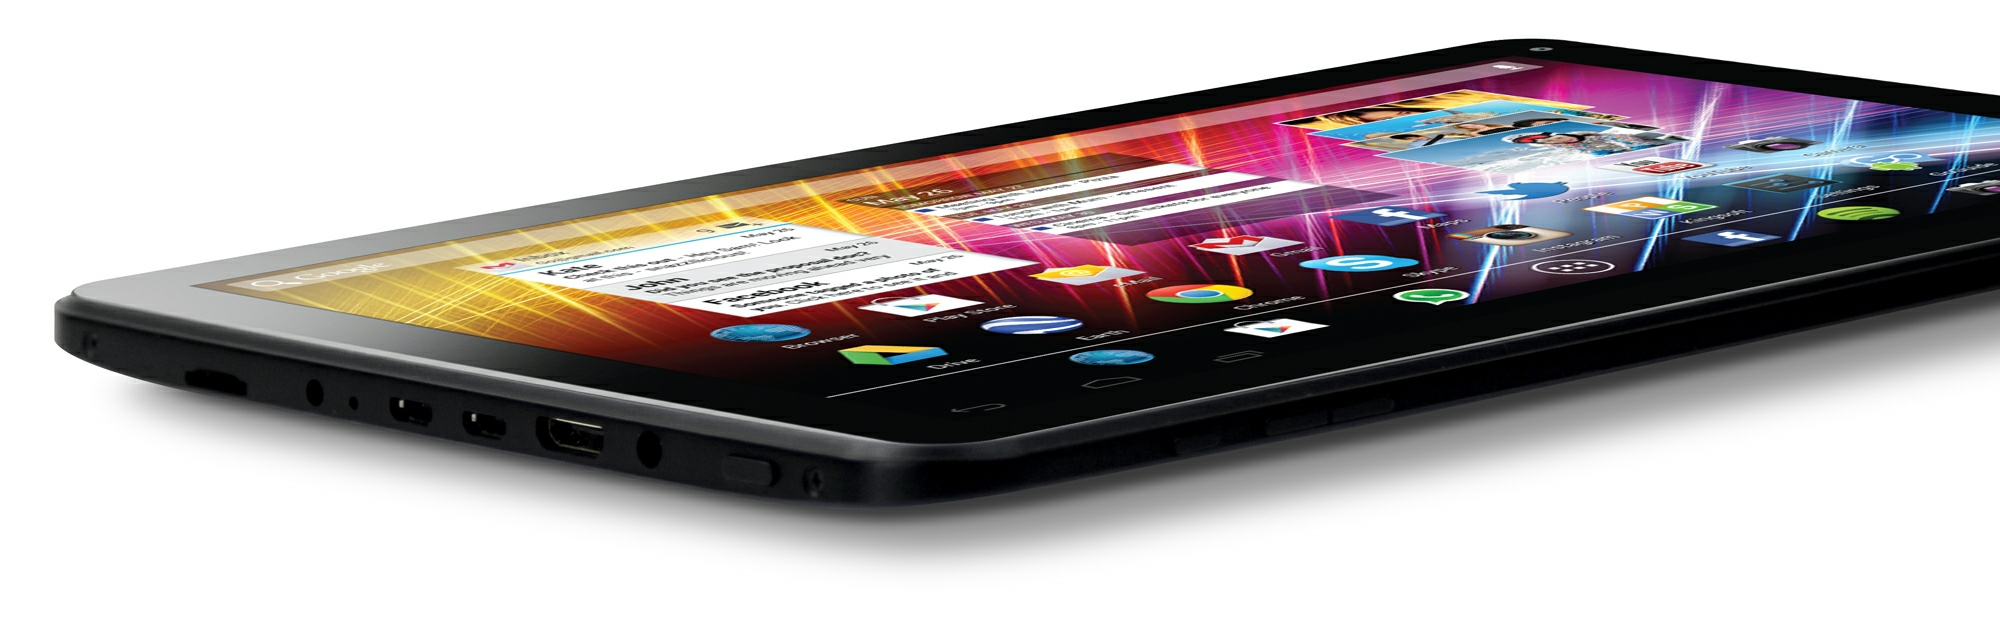 GoTab GBT10 — 10″ dual-core Android 4.2 tablet for £120